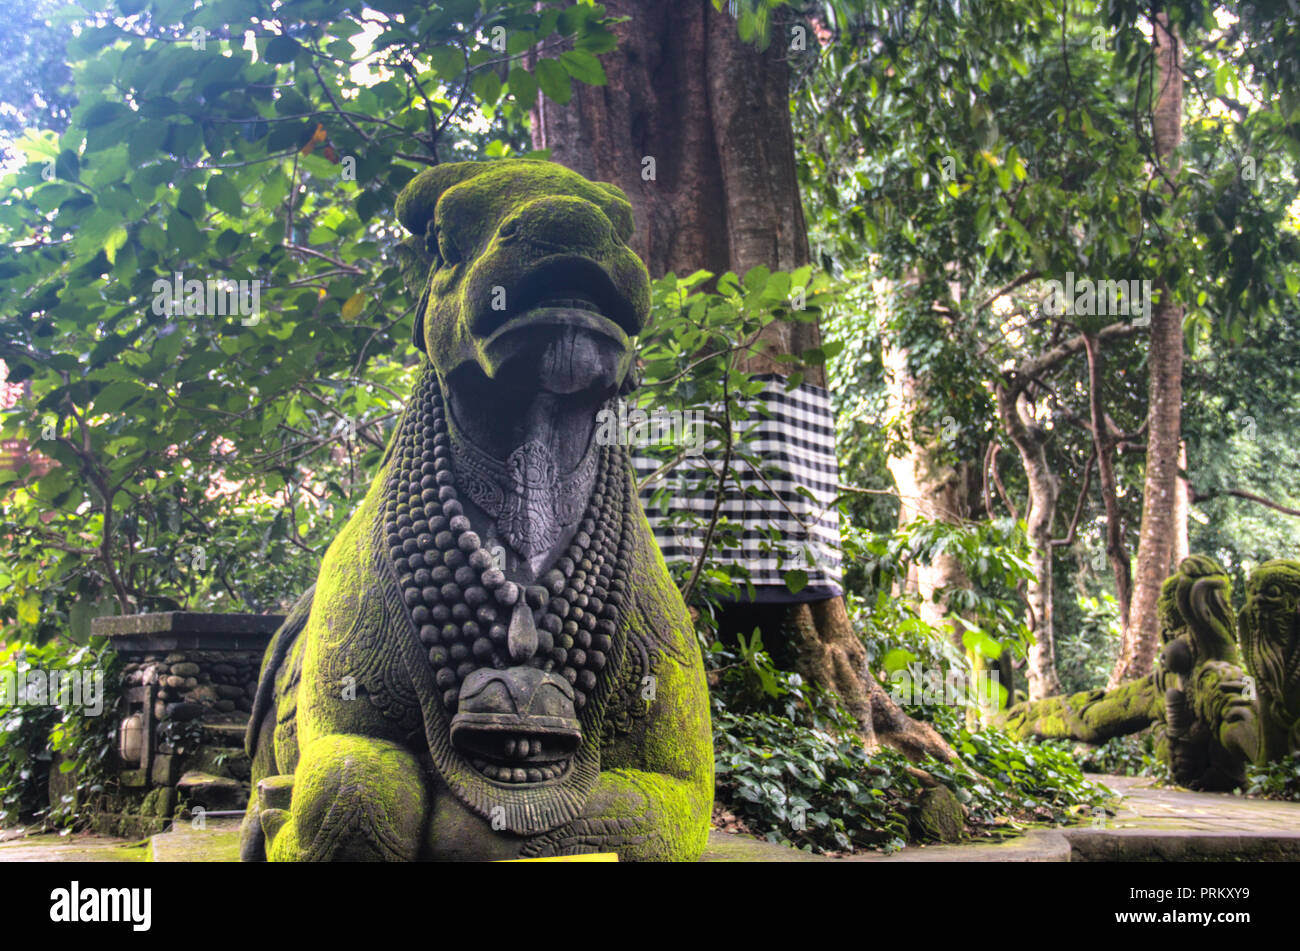 The Monkey Sanctuary Is One Of The Most Famous Tourist Spots In Ubud